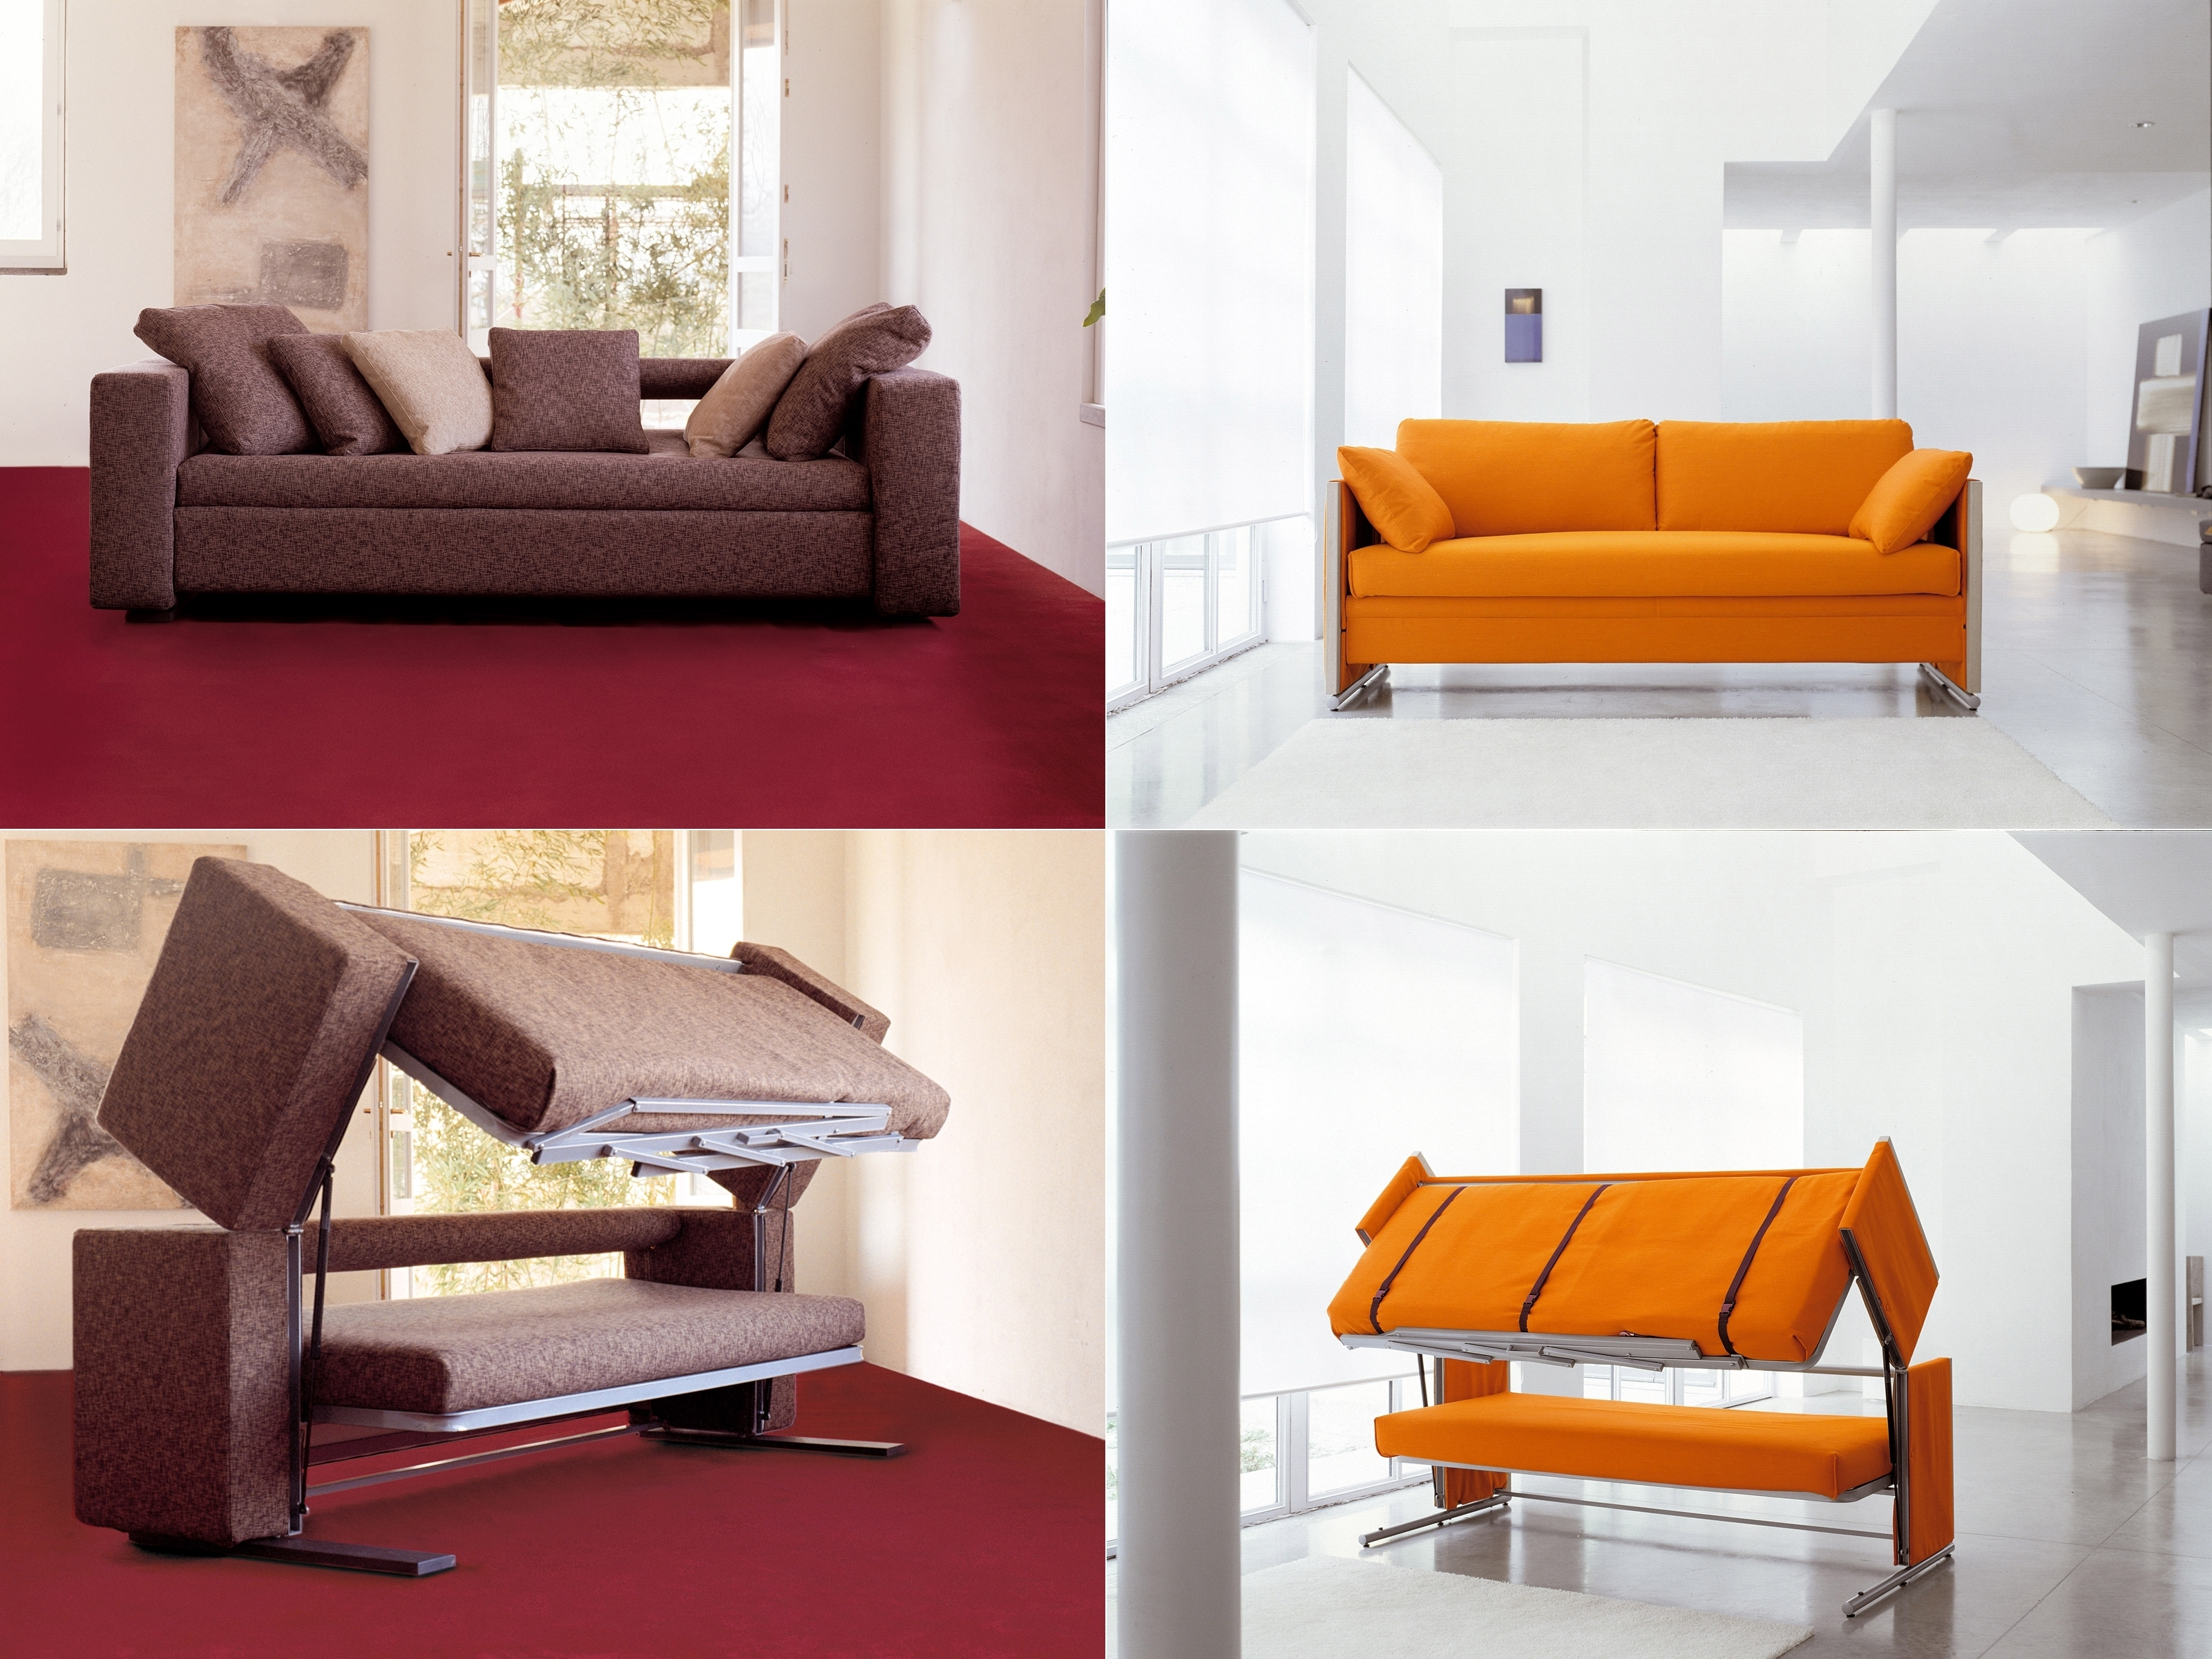 Newest Innovative Multifunctional Sofadesigner Giulio Manzoni Throughout Sofa Bunk Beds (View 10 of 15)